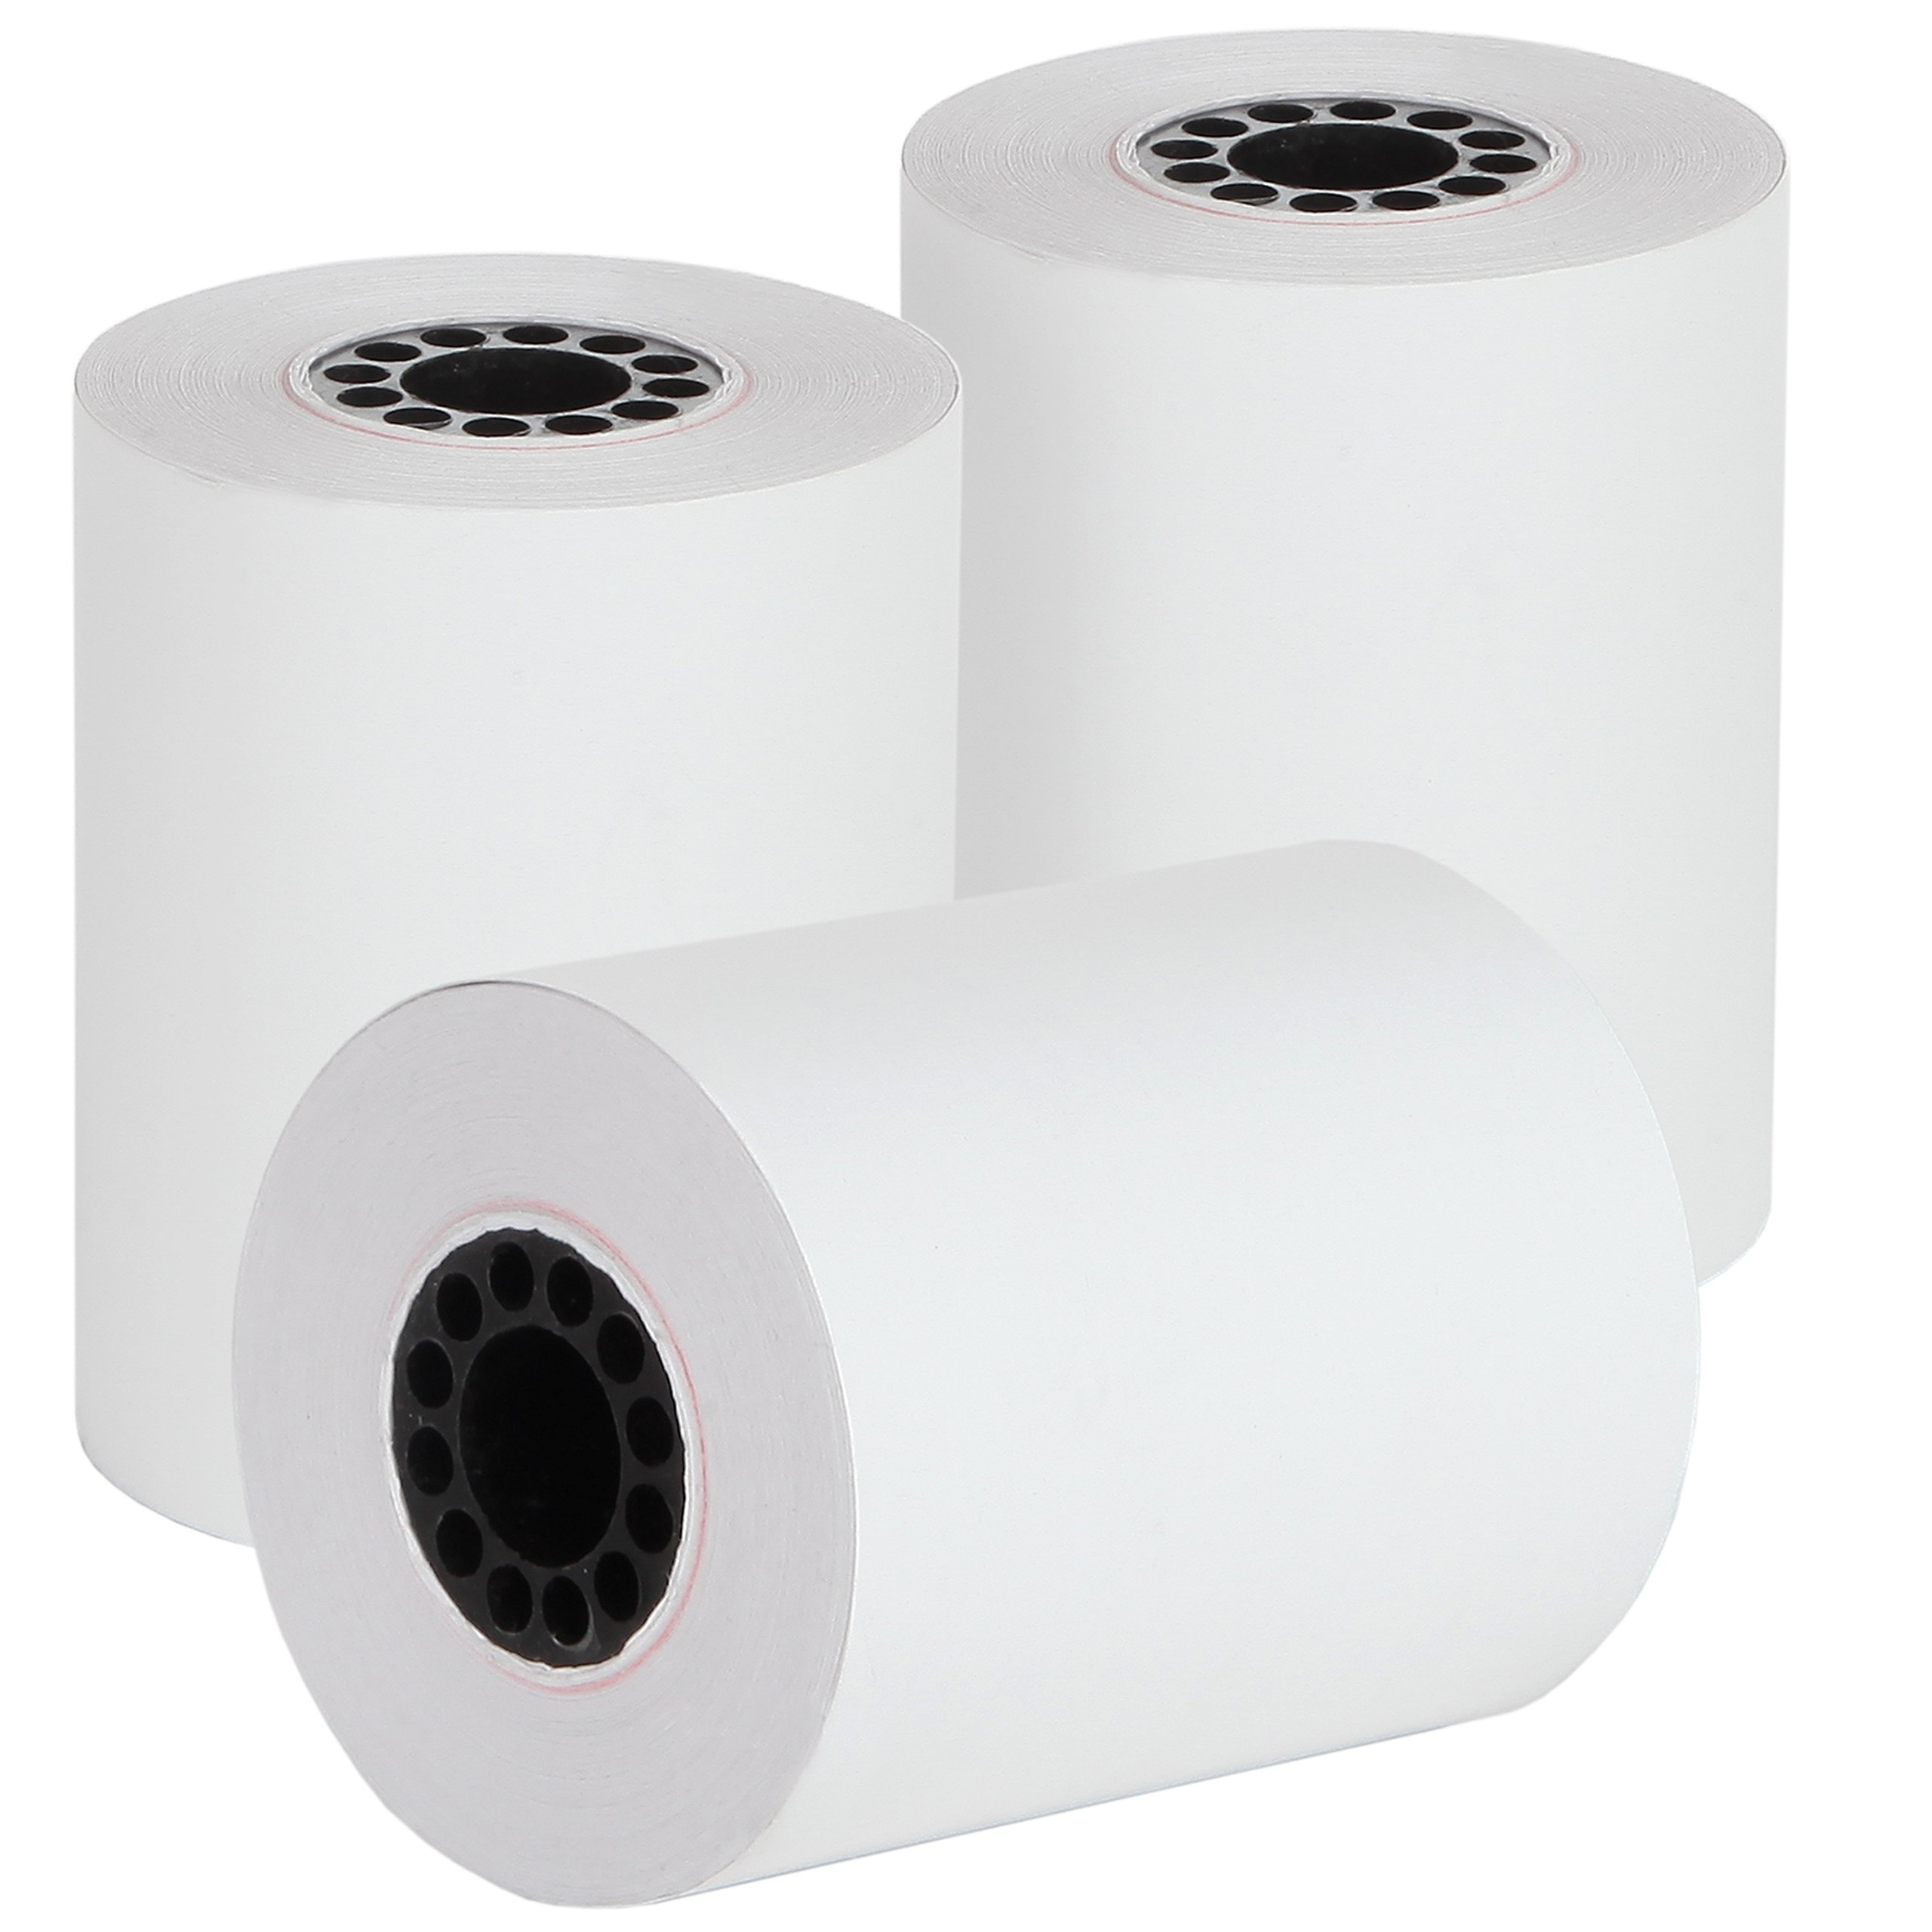 2 1/4'' X 85' Thermal Credit Card Paper 50 Rolls Per Box for Use in Some Verifone, Omni, Hypercom and First Data, BPA Free by Freccia Rossa Market